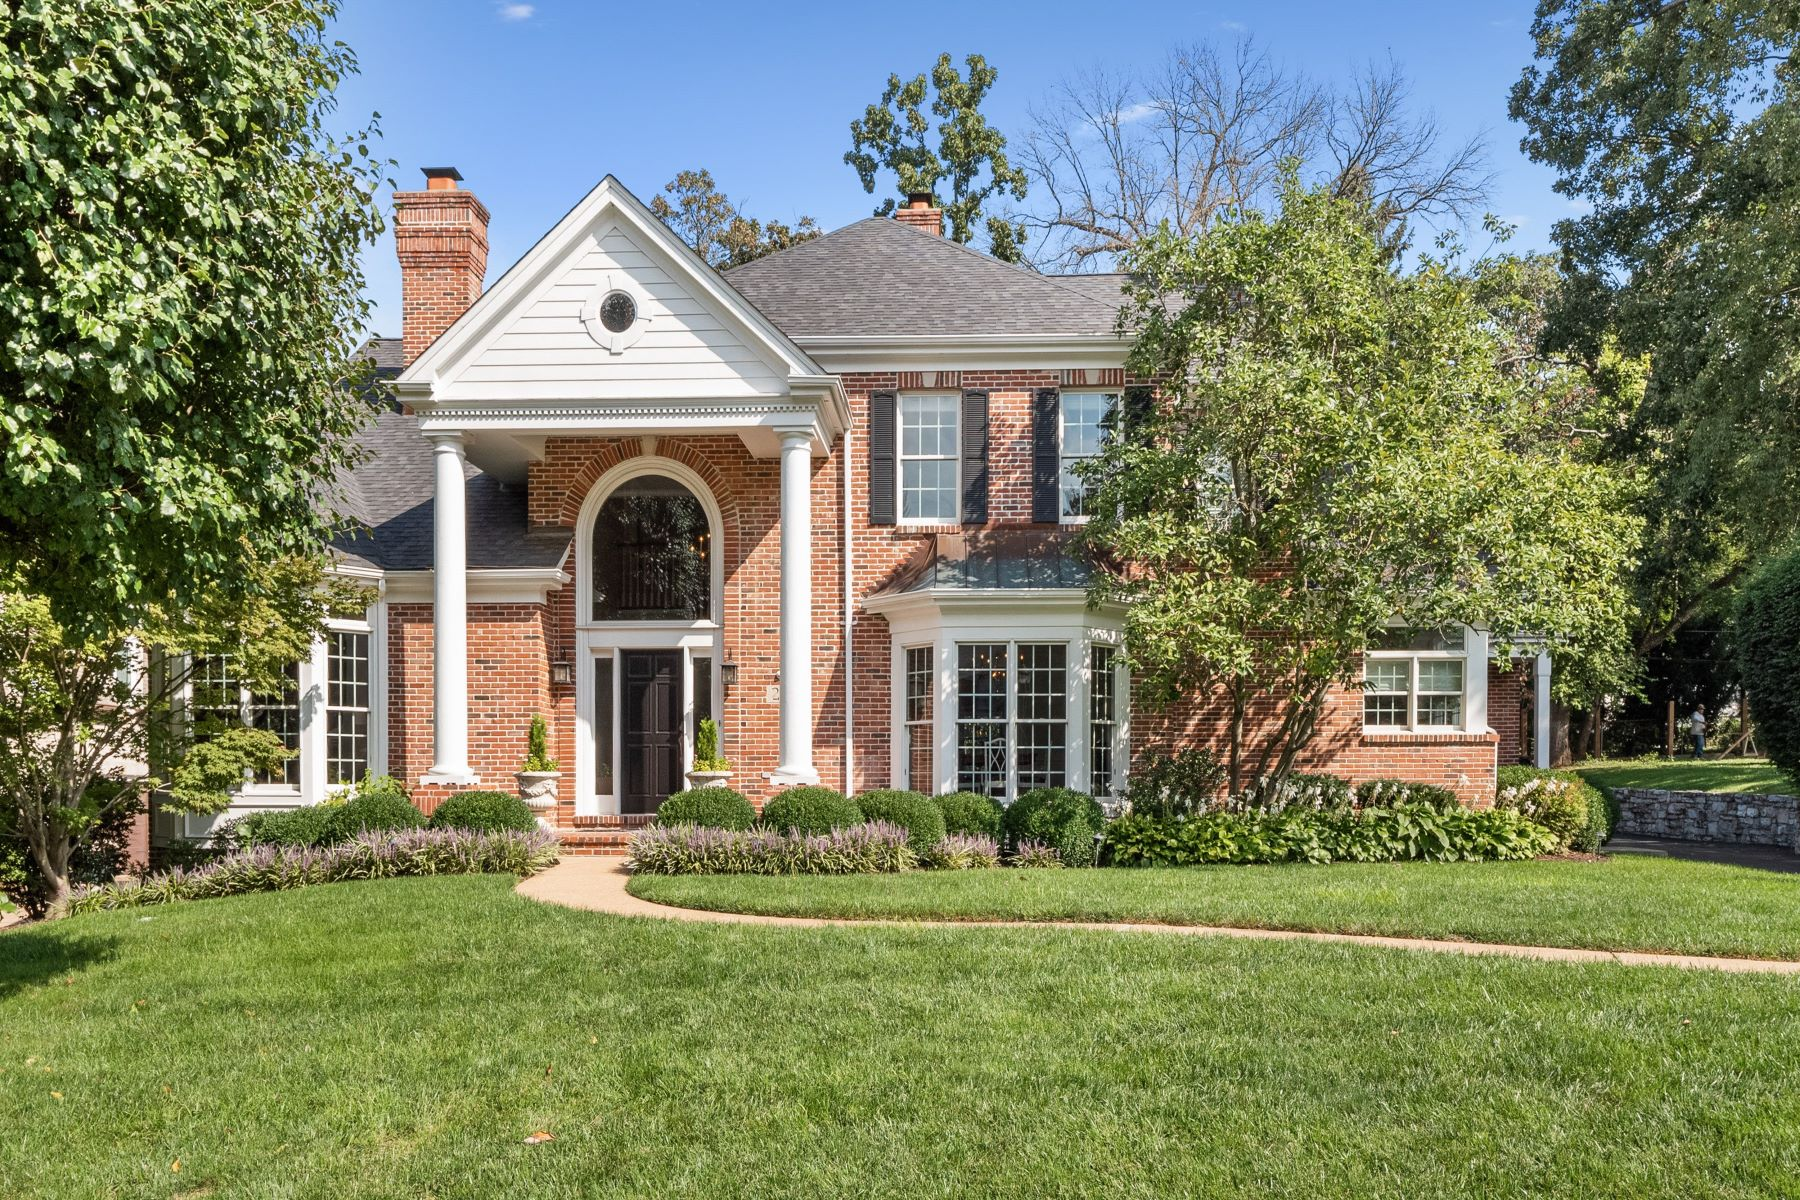 Single Family Homes for Sale at Executive Home in the Heart of Ladue 27 Deer Creek Woods Drive Ladue, Missouri 63124 United States